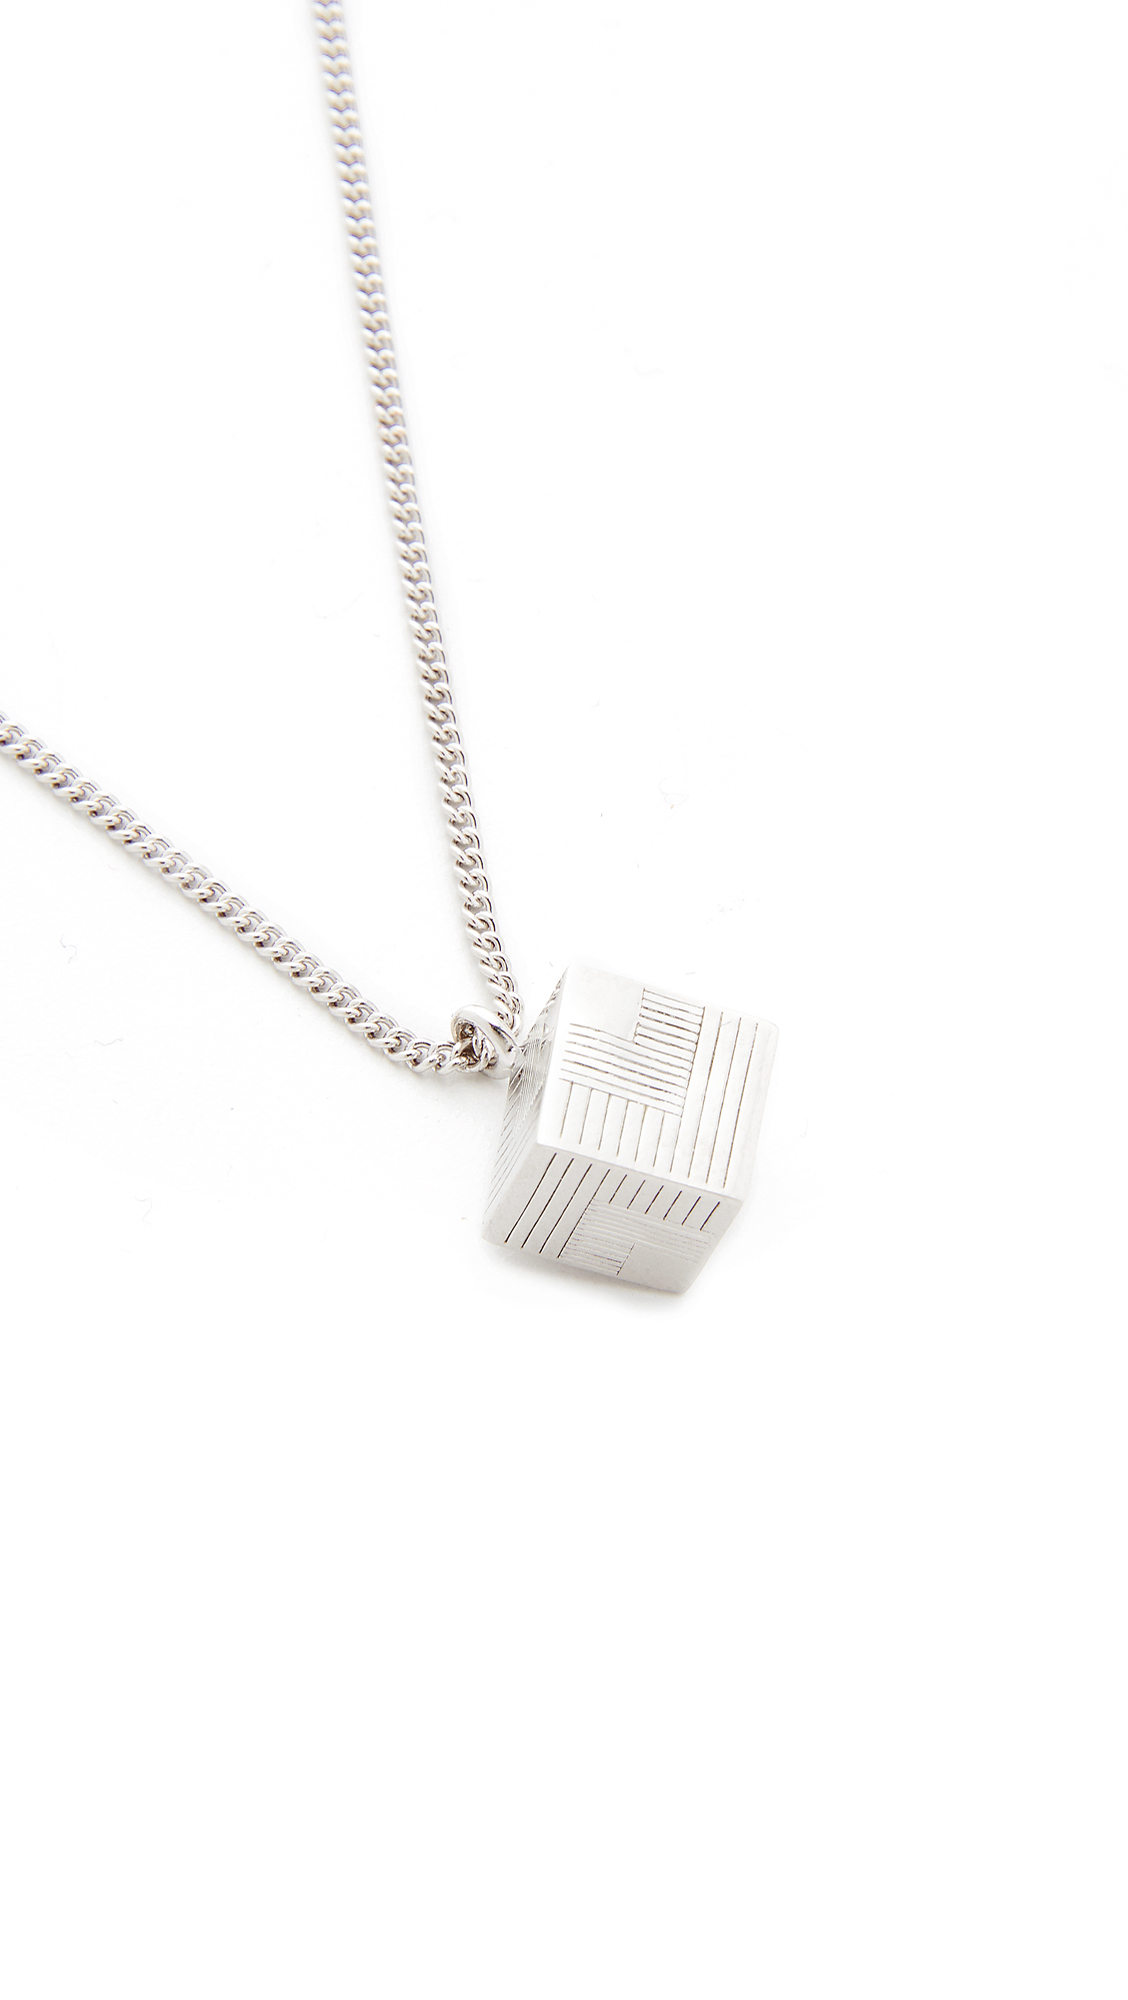 A.P.C. Collier Rubik Necklace in Silver